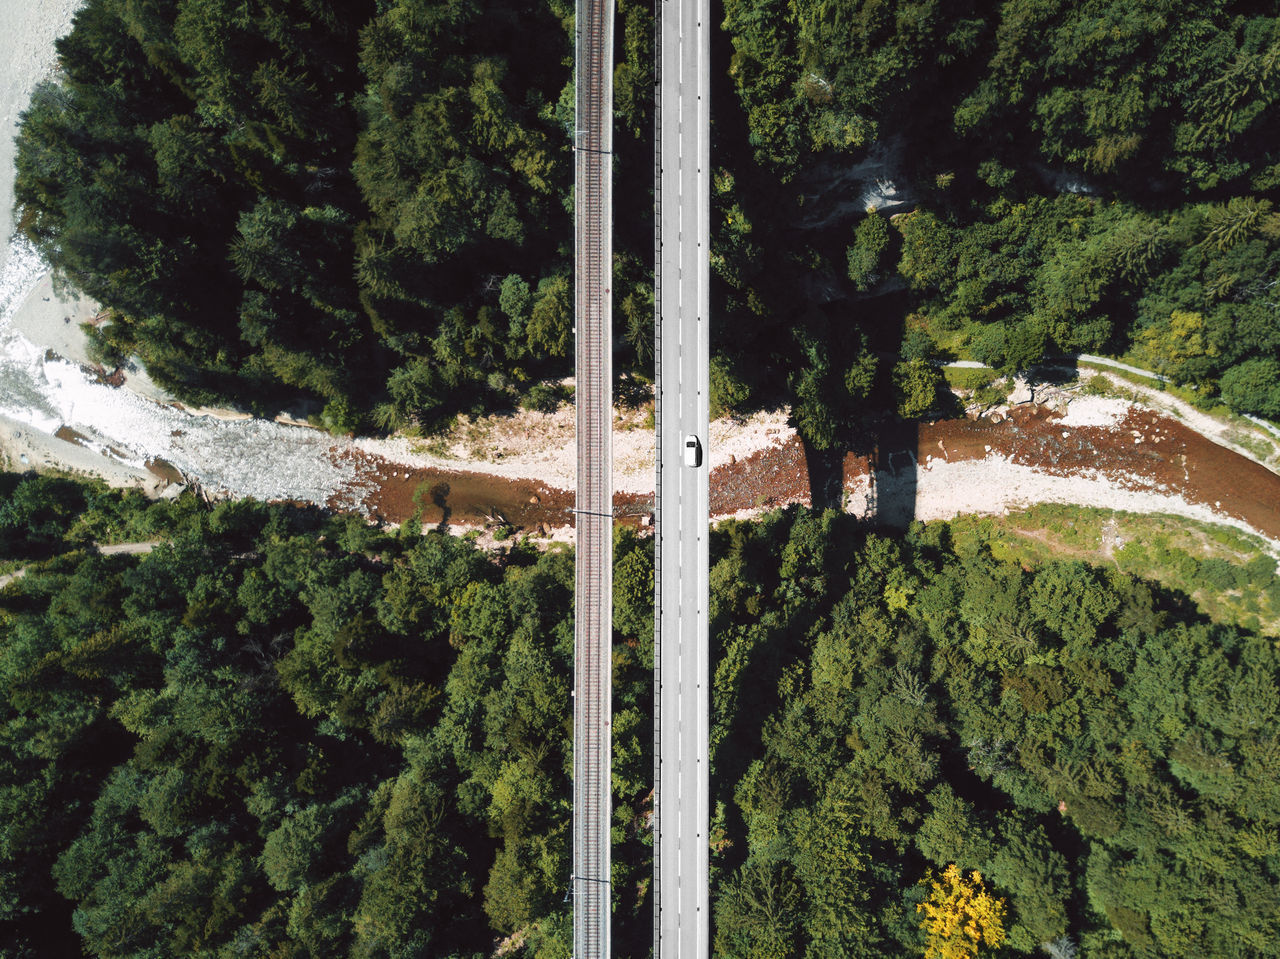 Aerial view of bridges over trees at forest